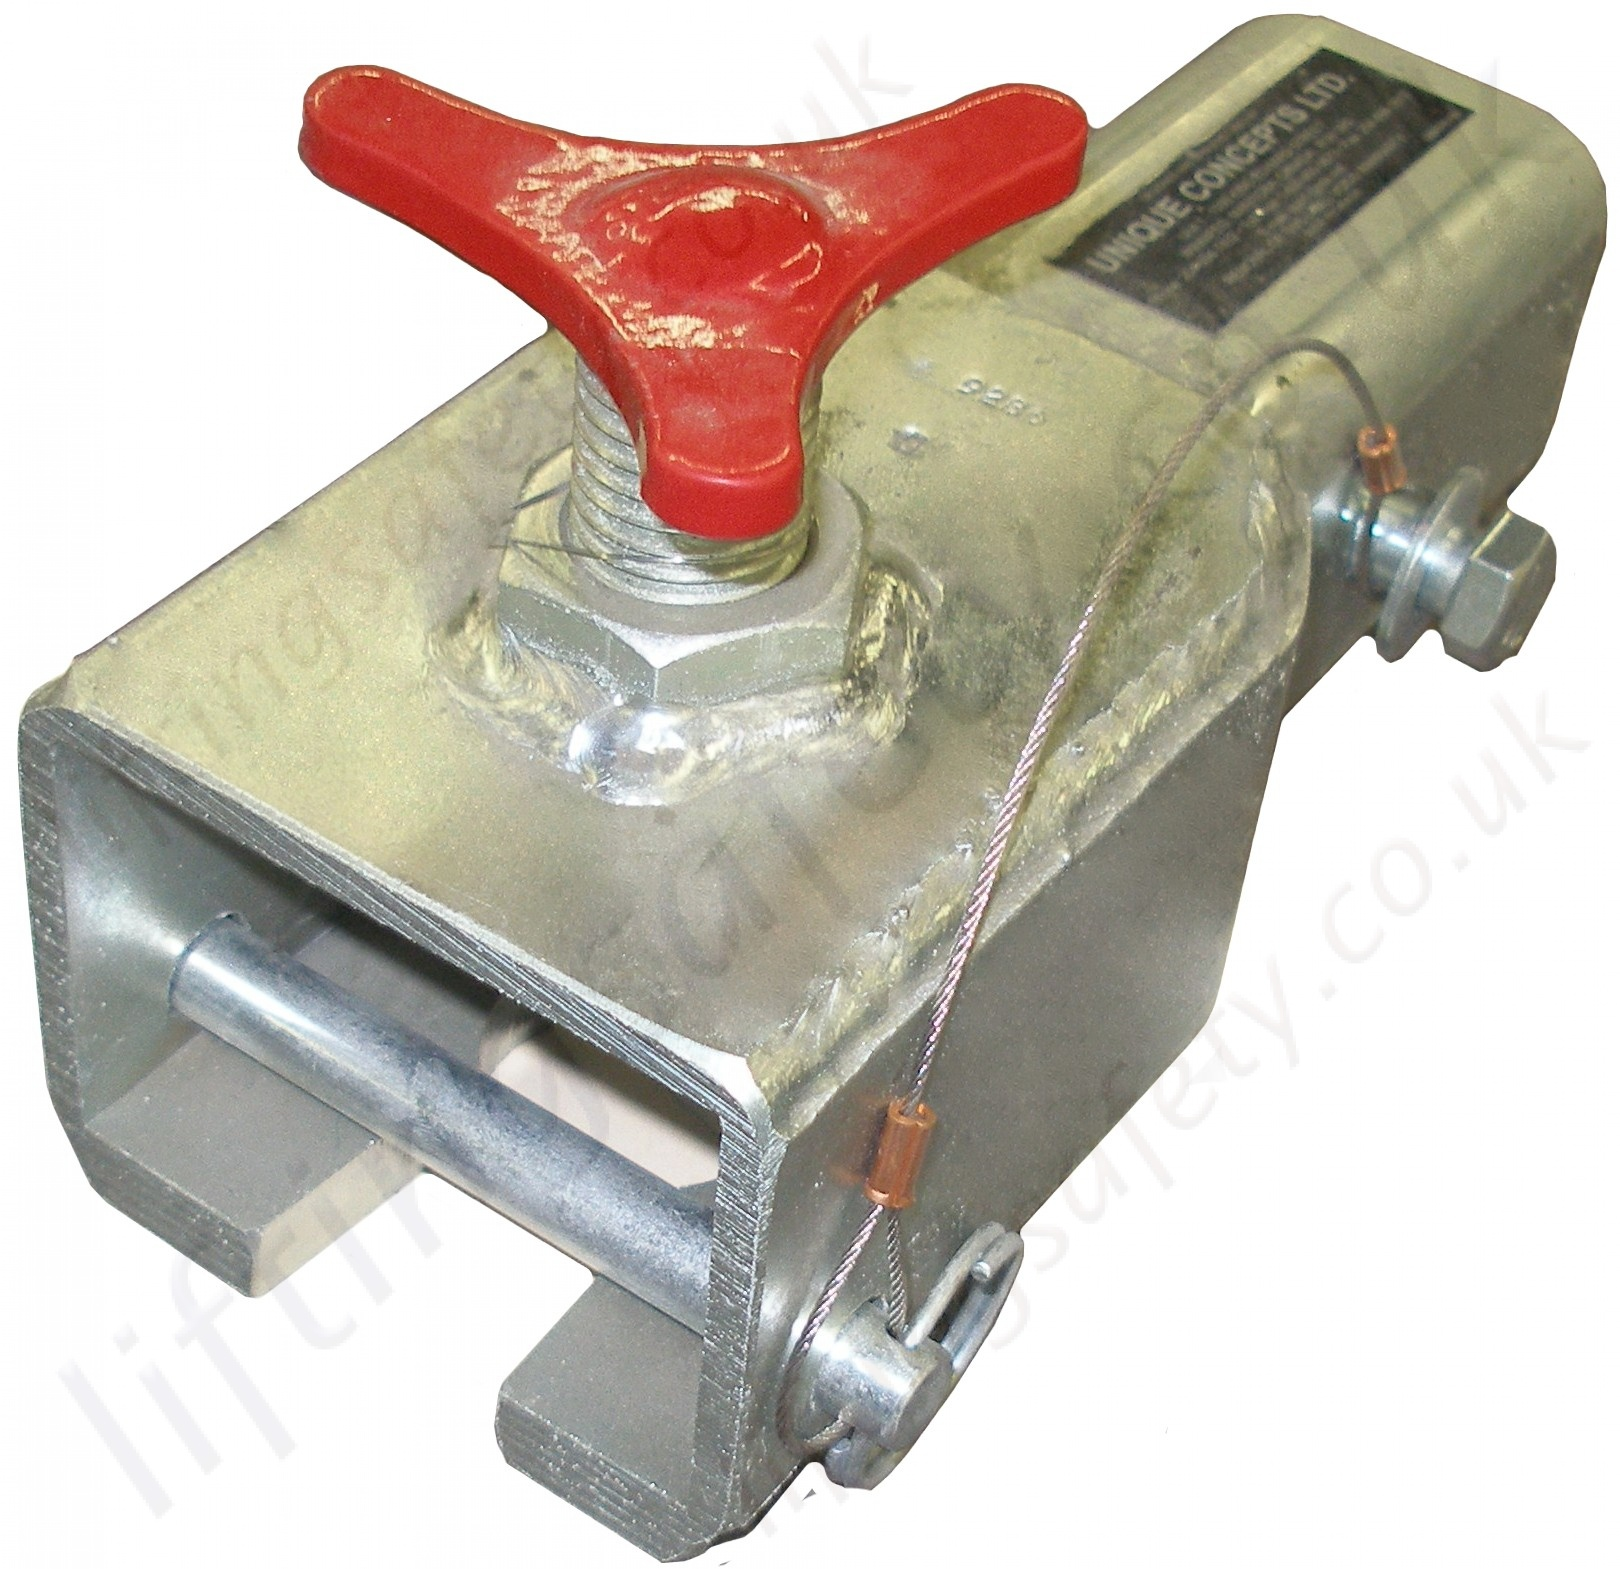 Expanding Joint Pin Coupler : Sala advanced quot vehicle hitch mounted davit arm fits on